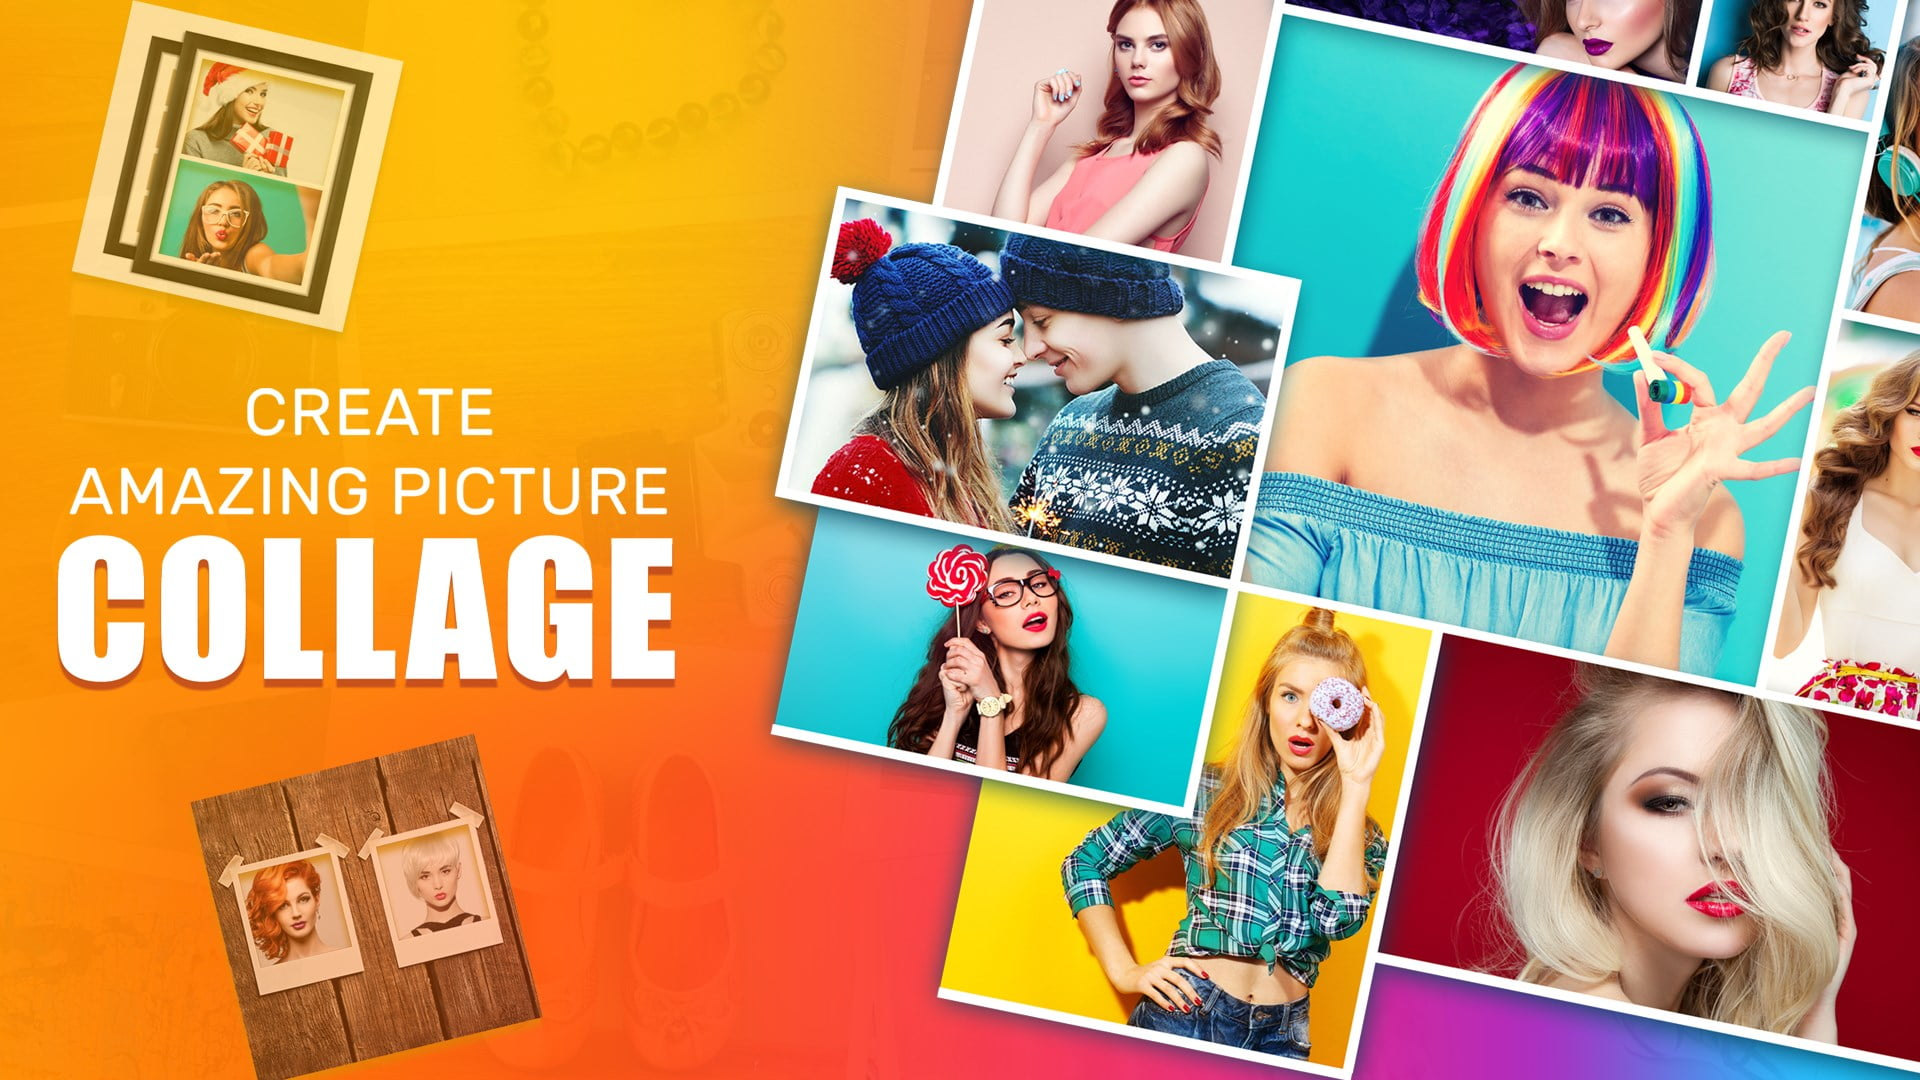 picsart mod apk latest version